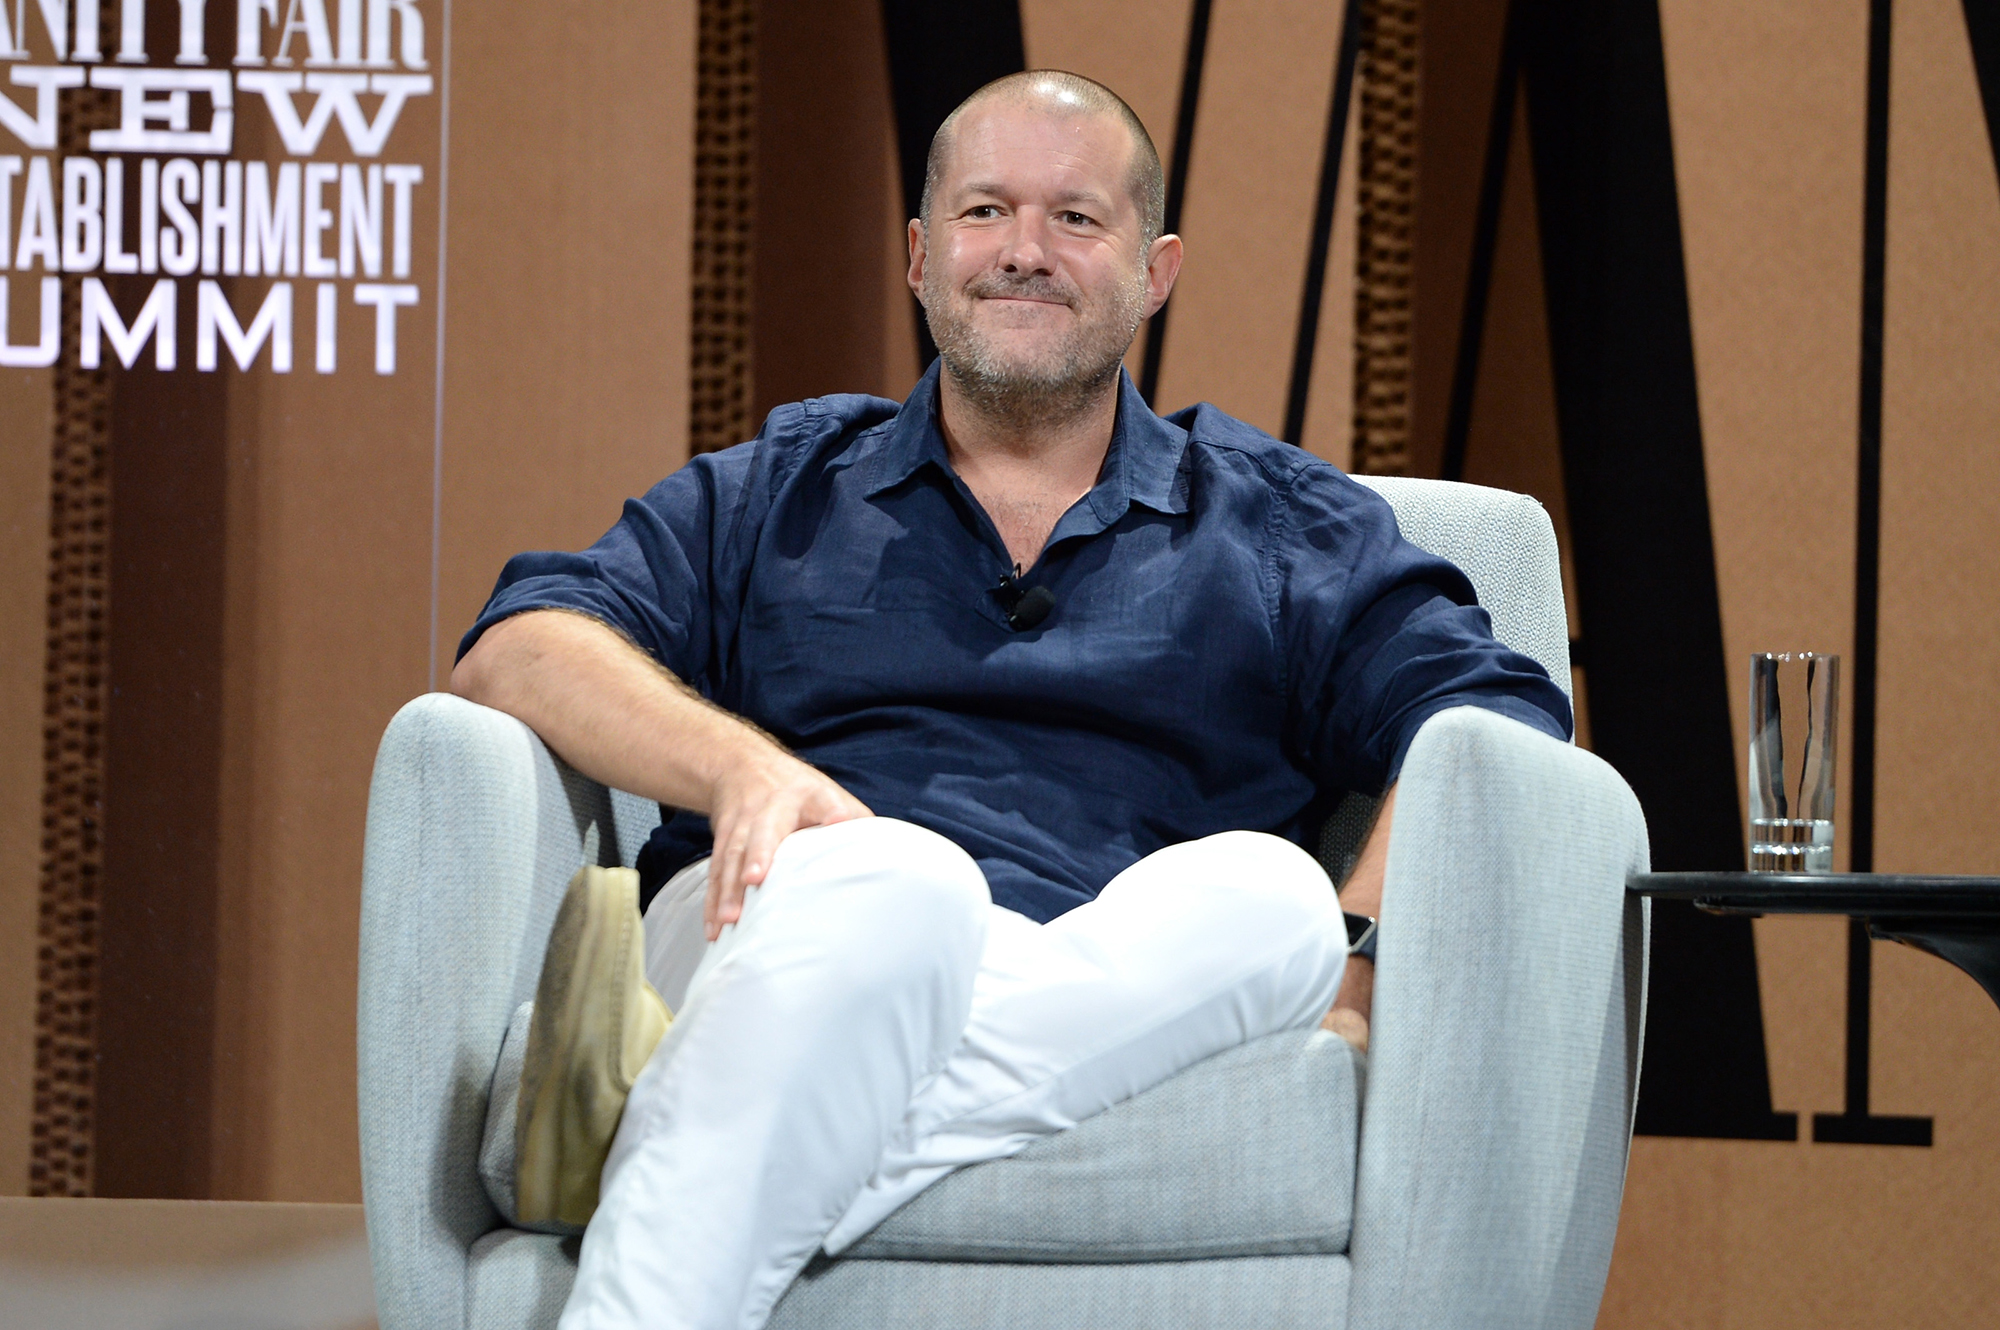 Legendary Apple designer Jony Ive will work with Airbnb on future products